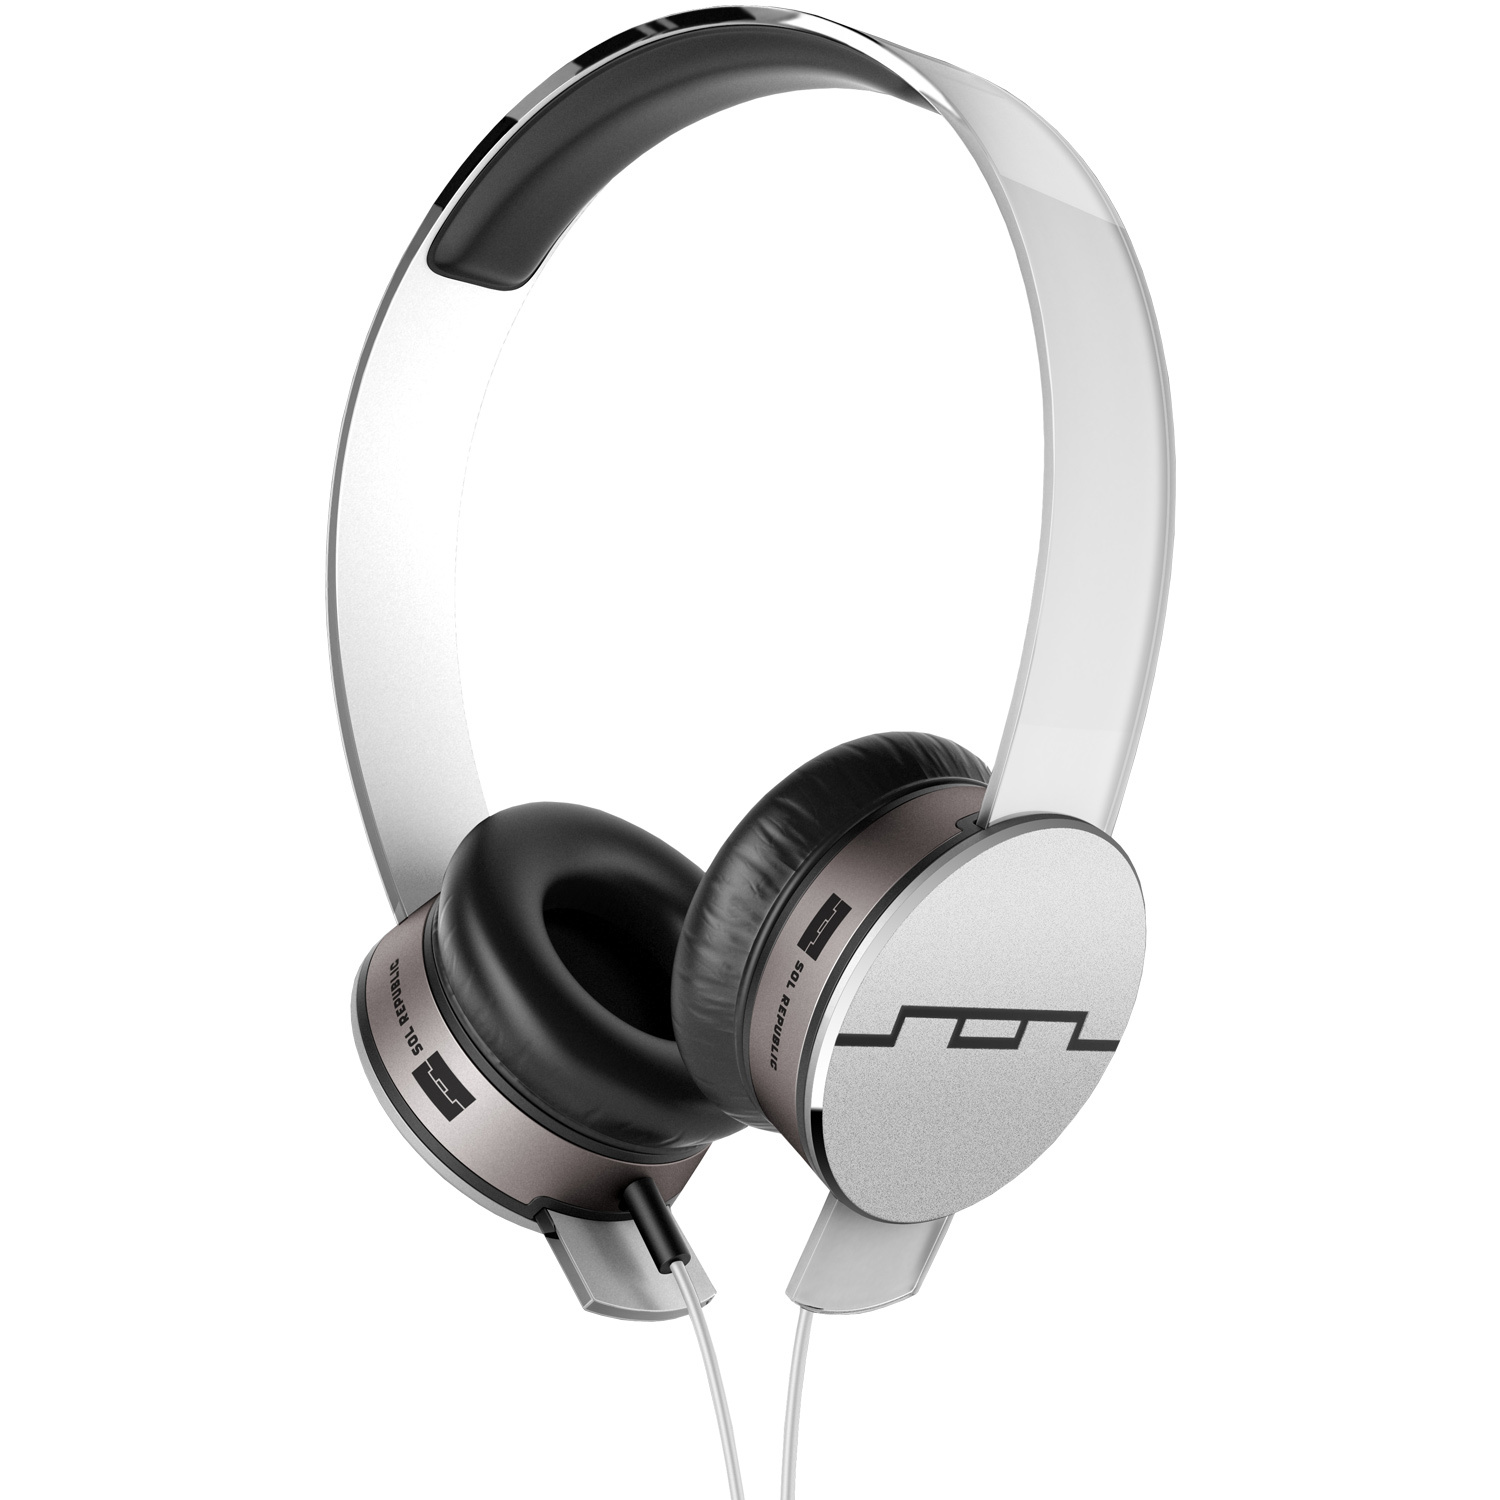 Shop for SOL headphones at Best Buy. Find low everyday prices and buy online for delivery or in-store pick-up.